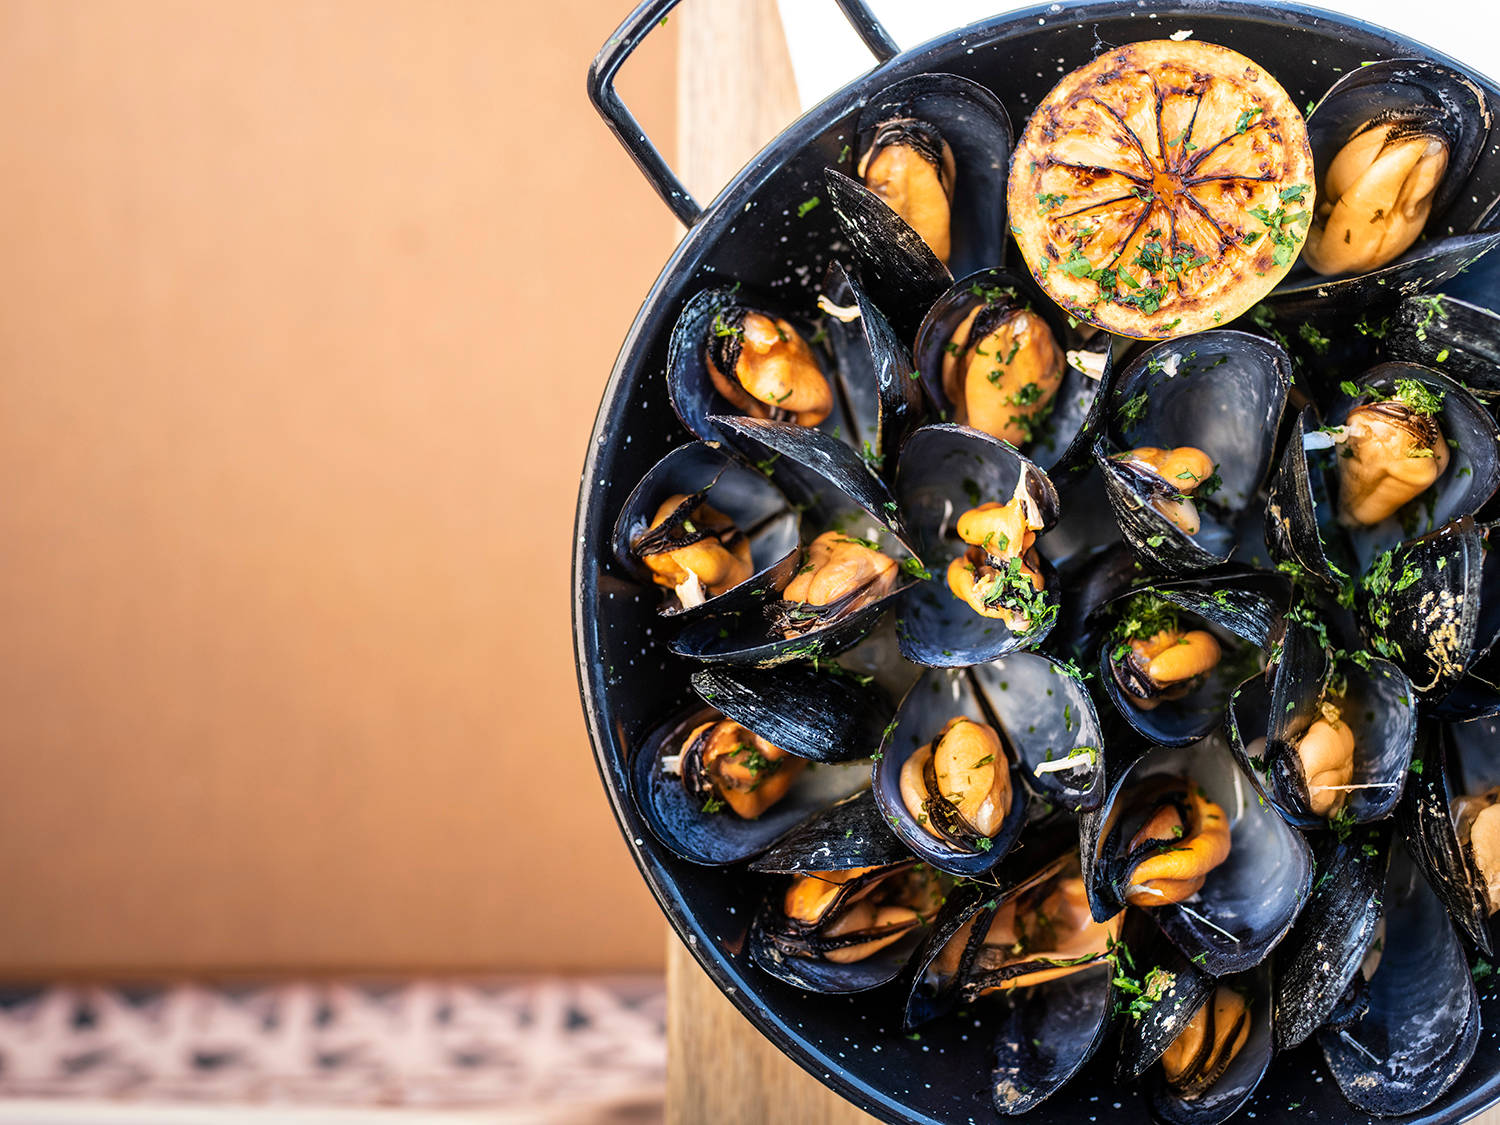 Mediterranean dishes and tapas